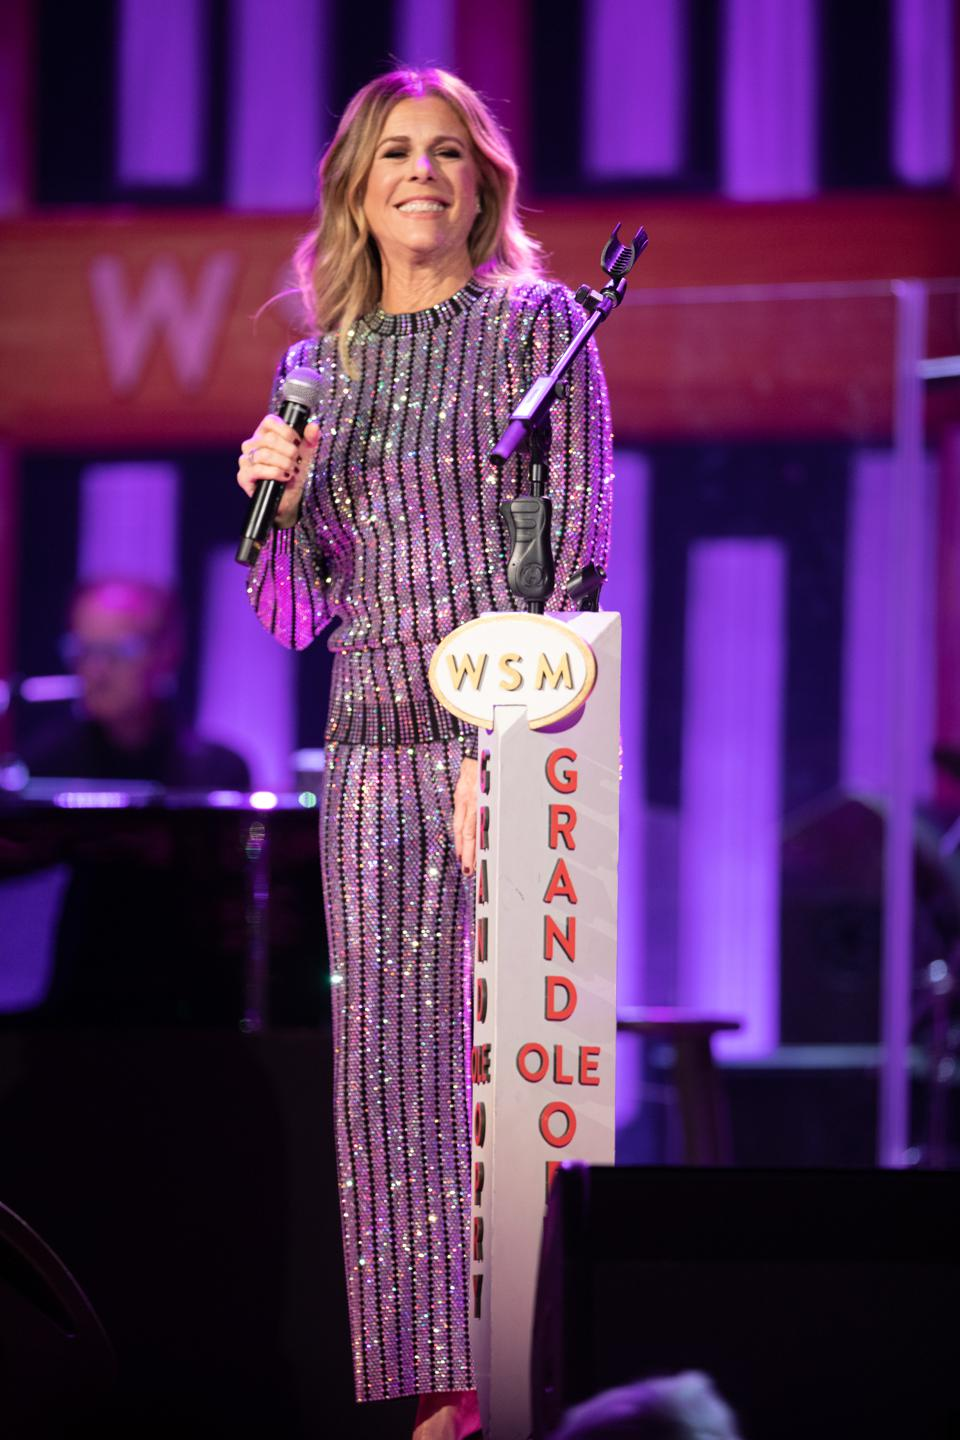 Rita Wilson performing on the Grand Ole Opry in Nashville - December 6, 2019